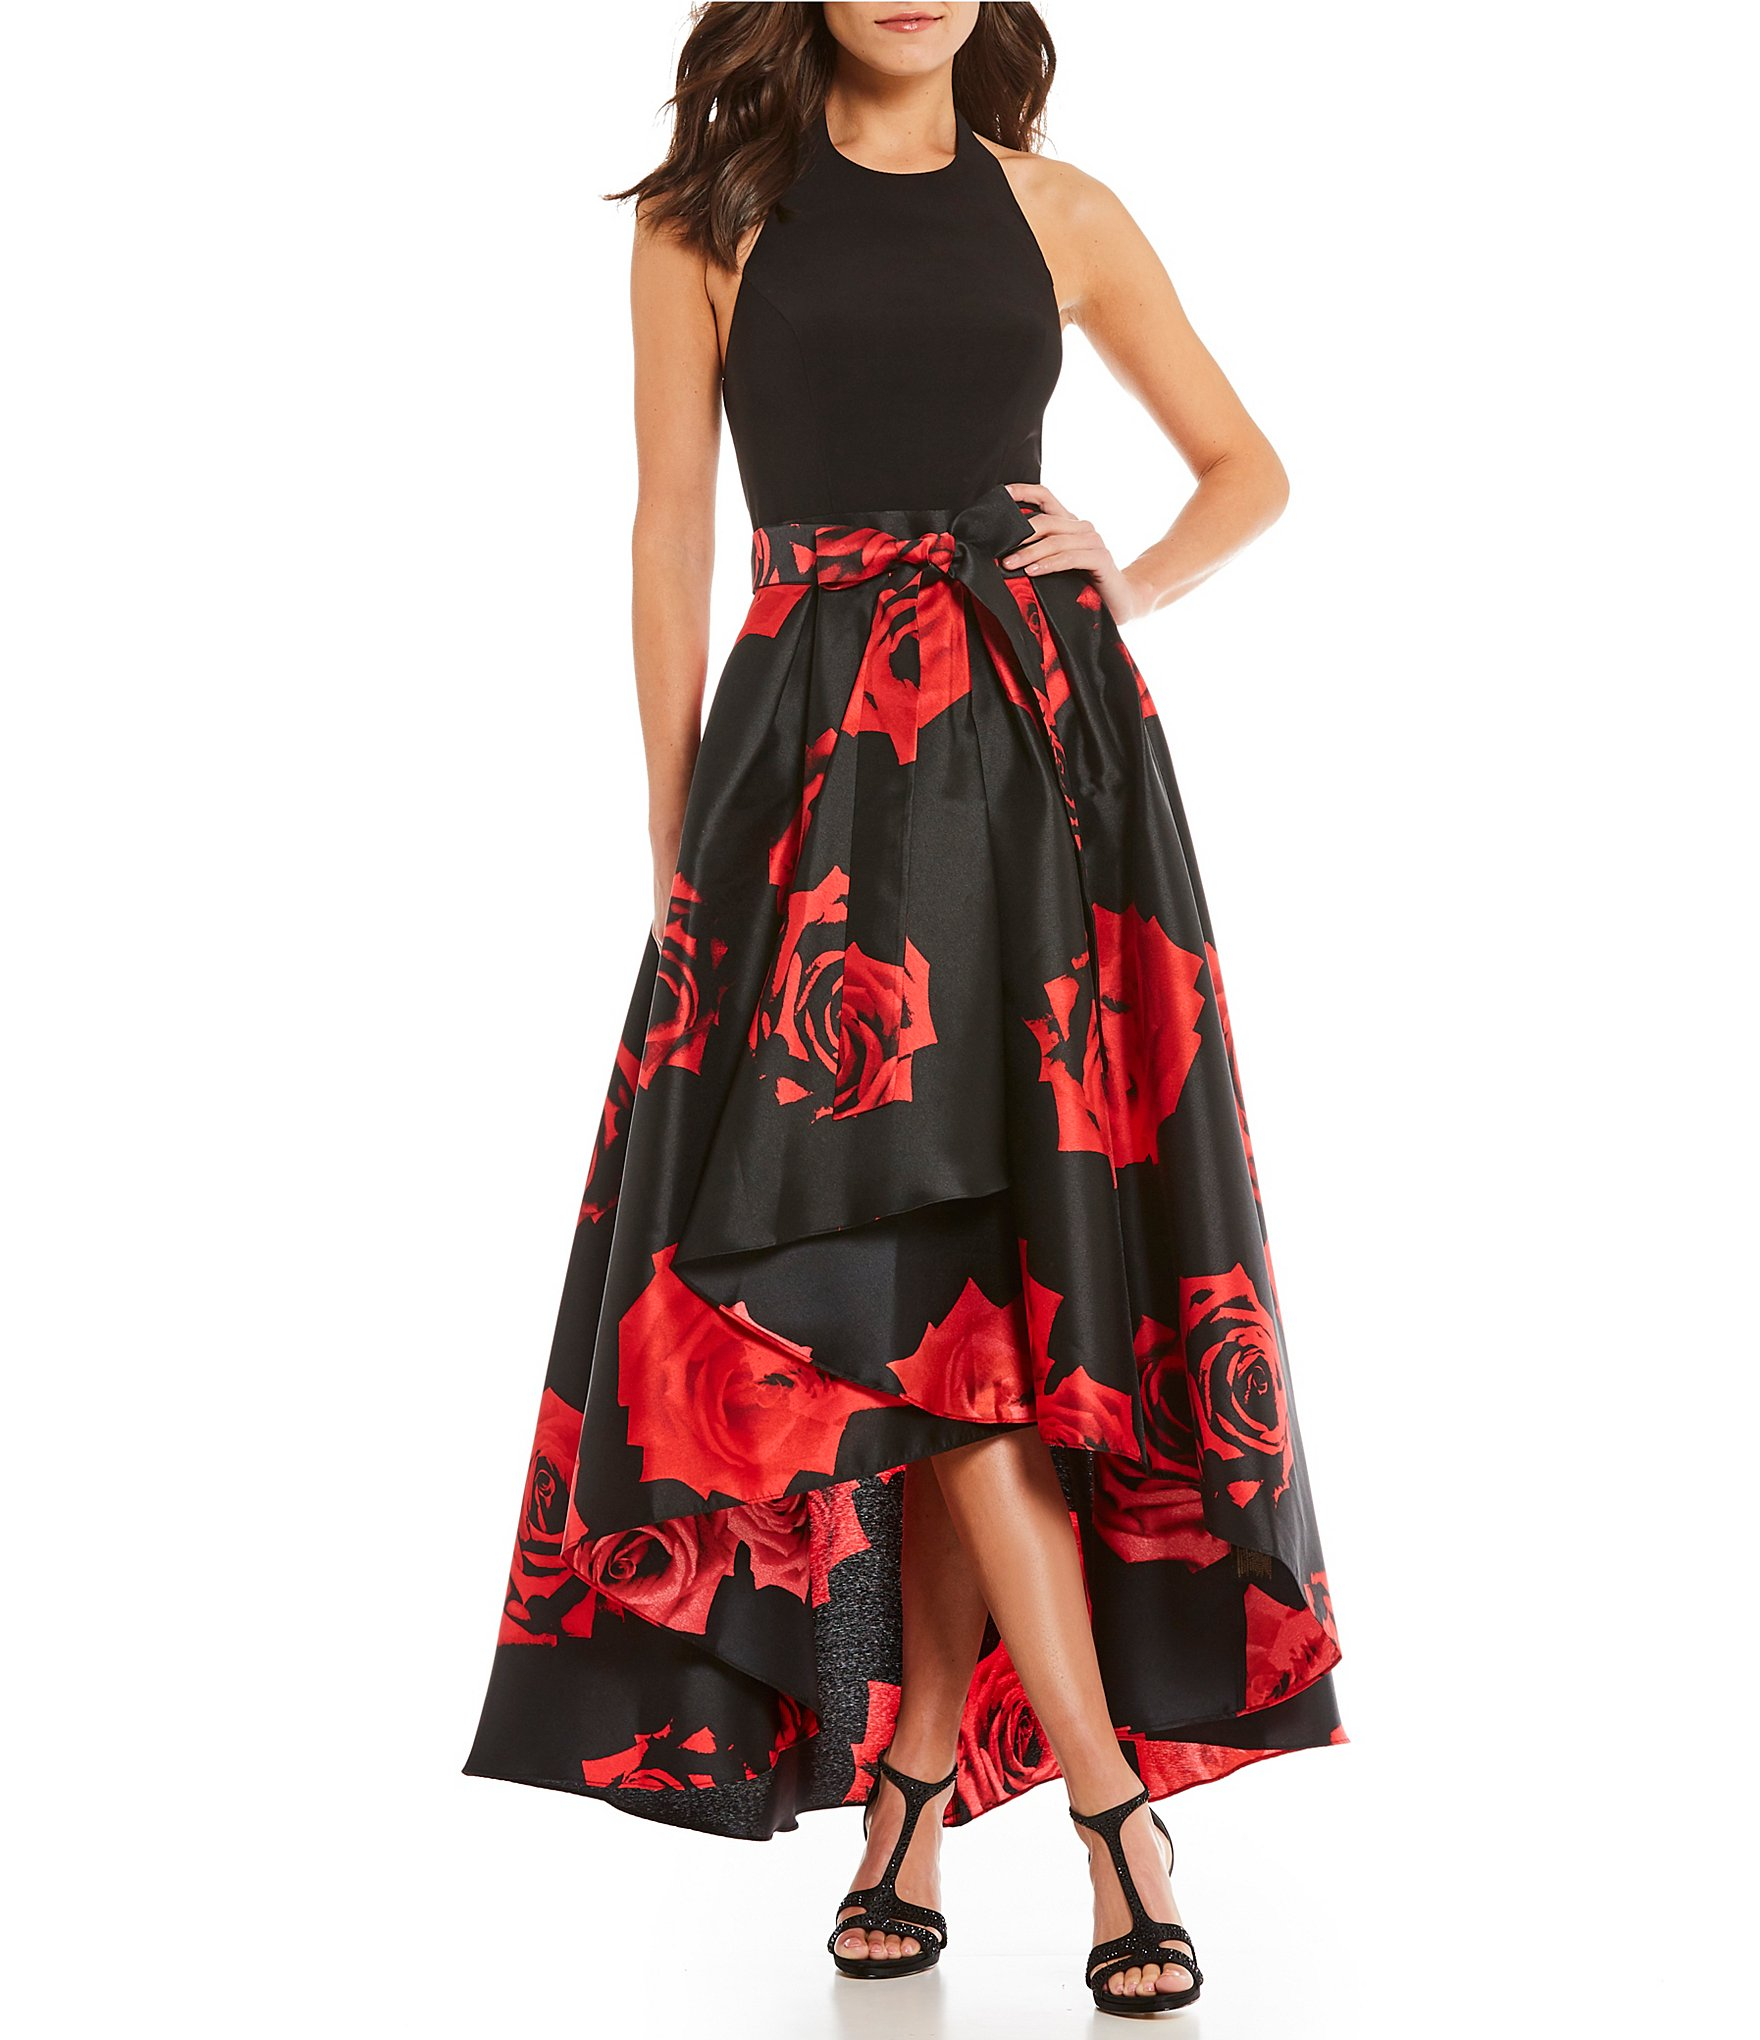 Black and red cocktail dresses for women